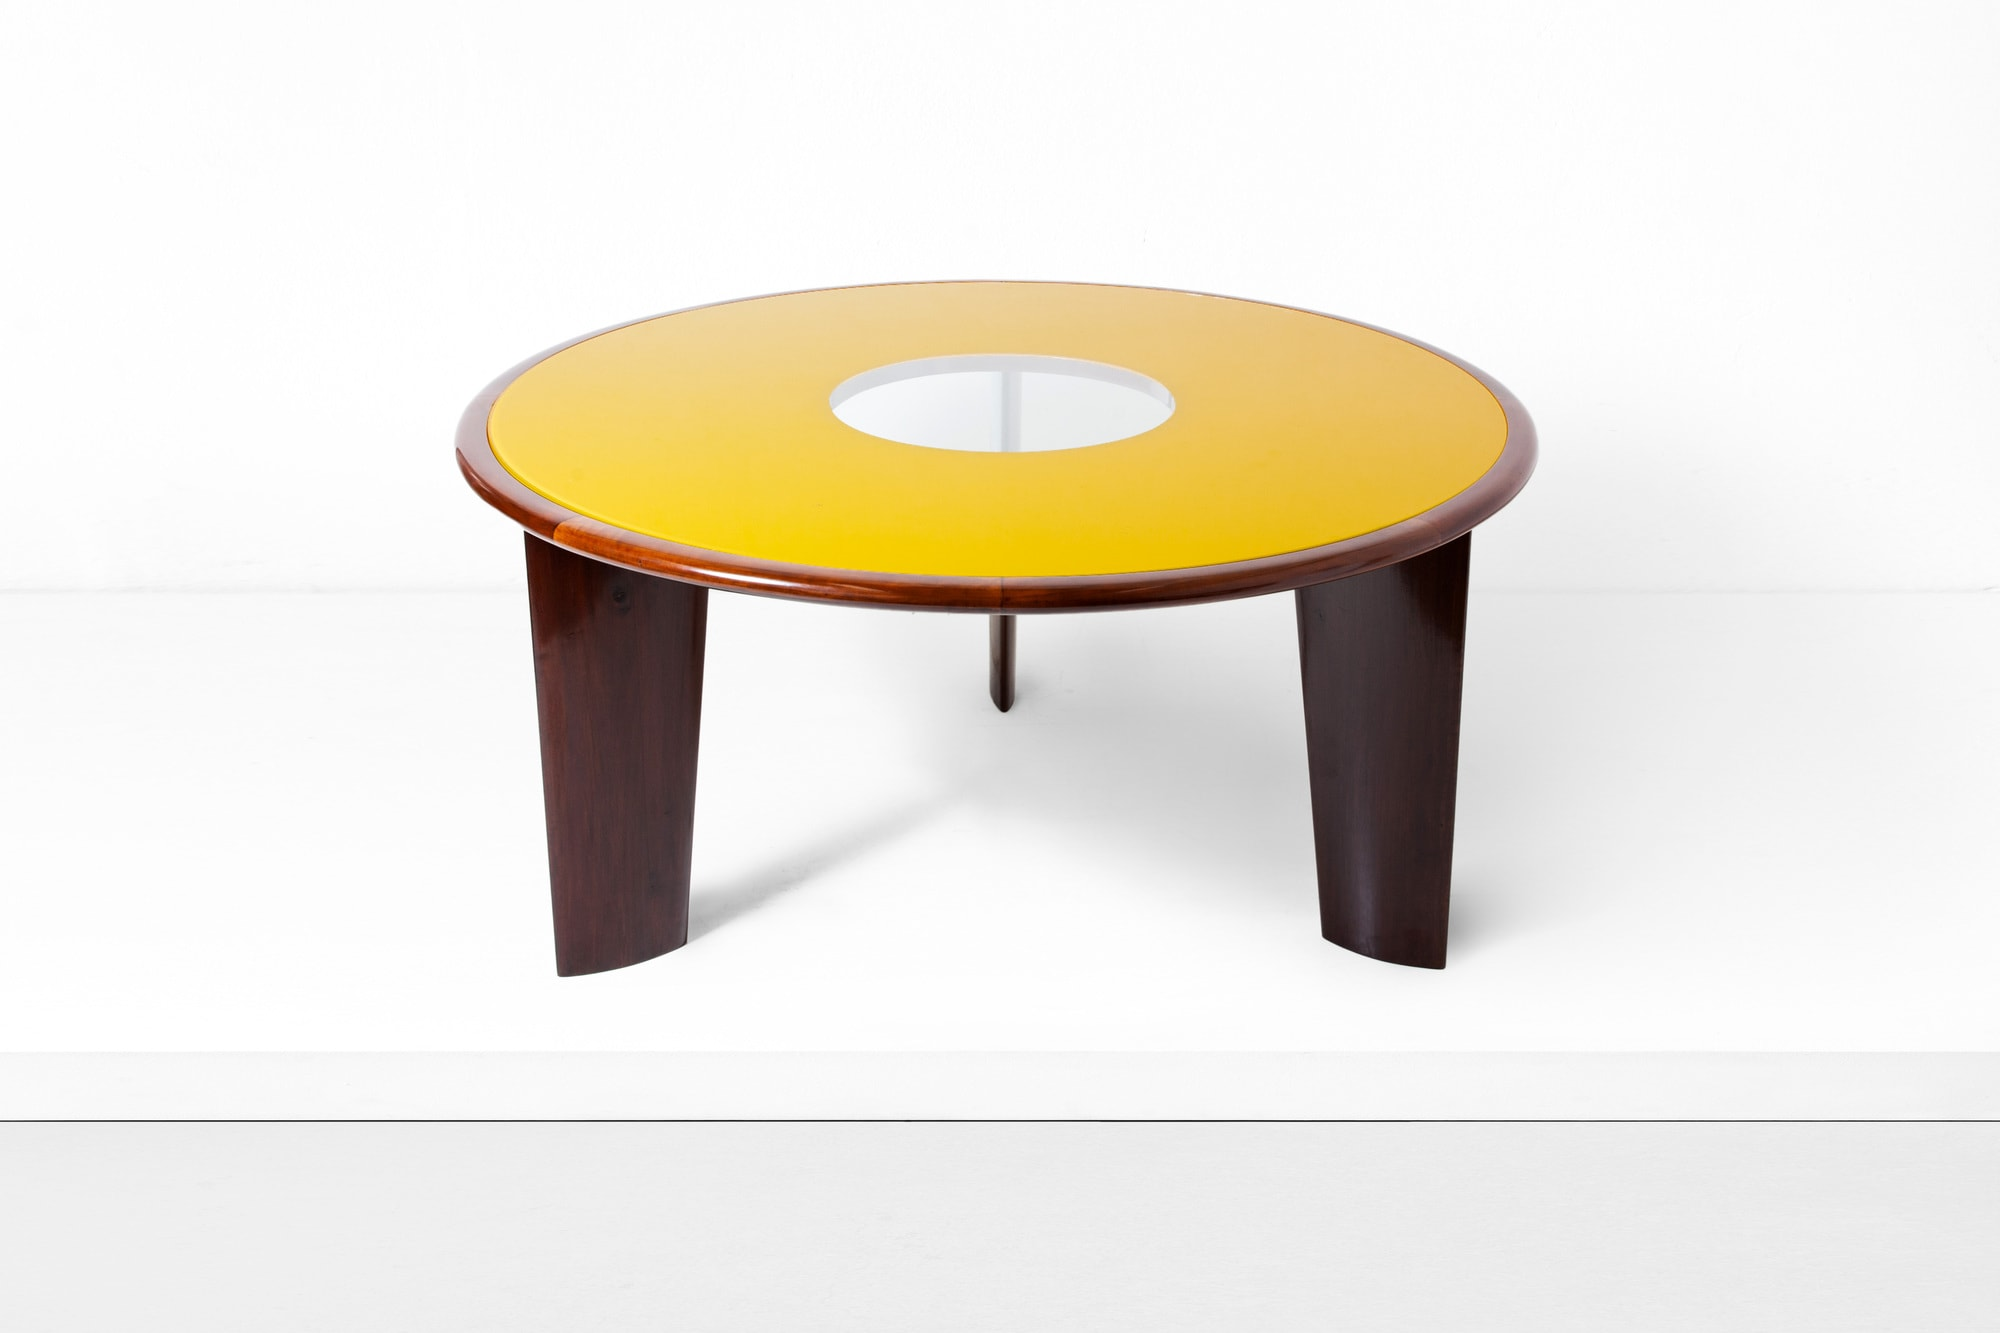 tenreiro_table_jaune_1